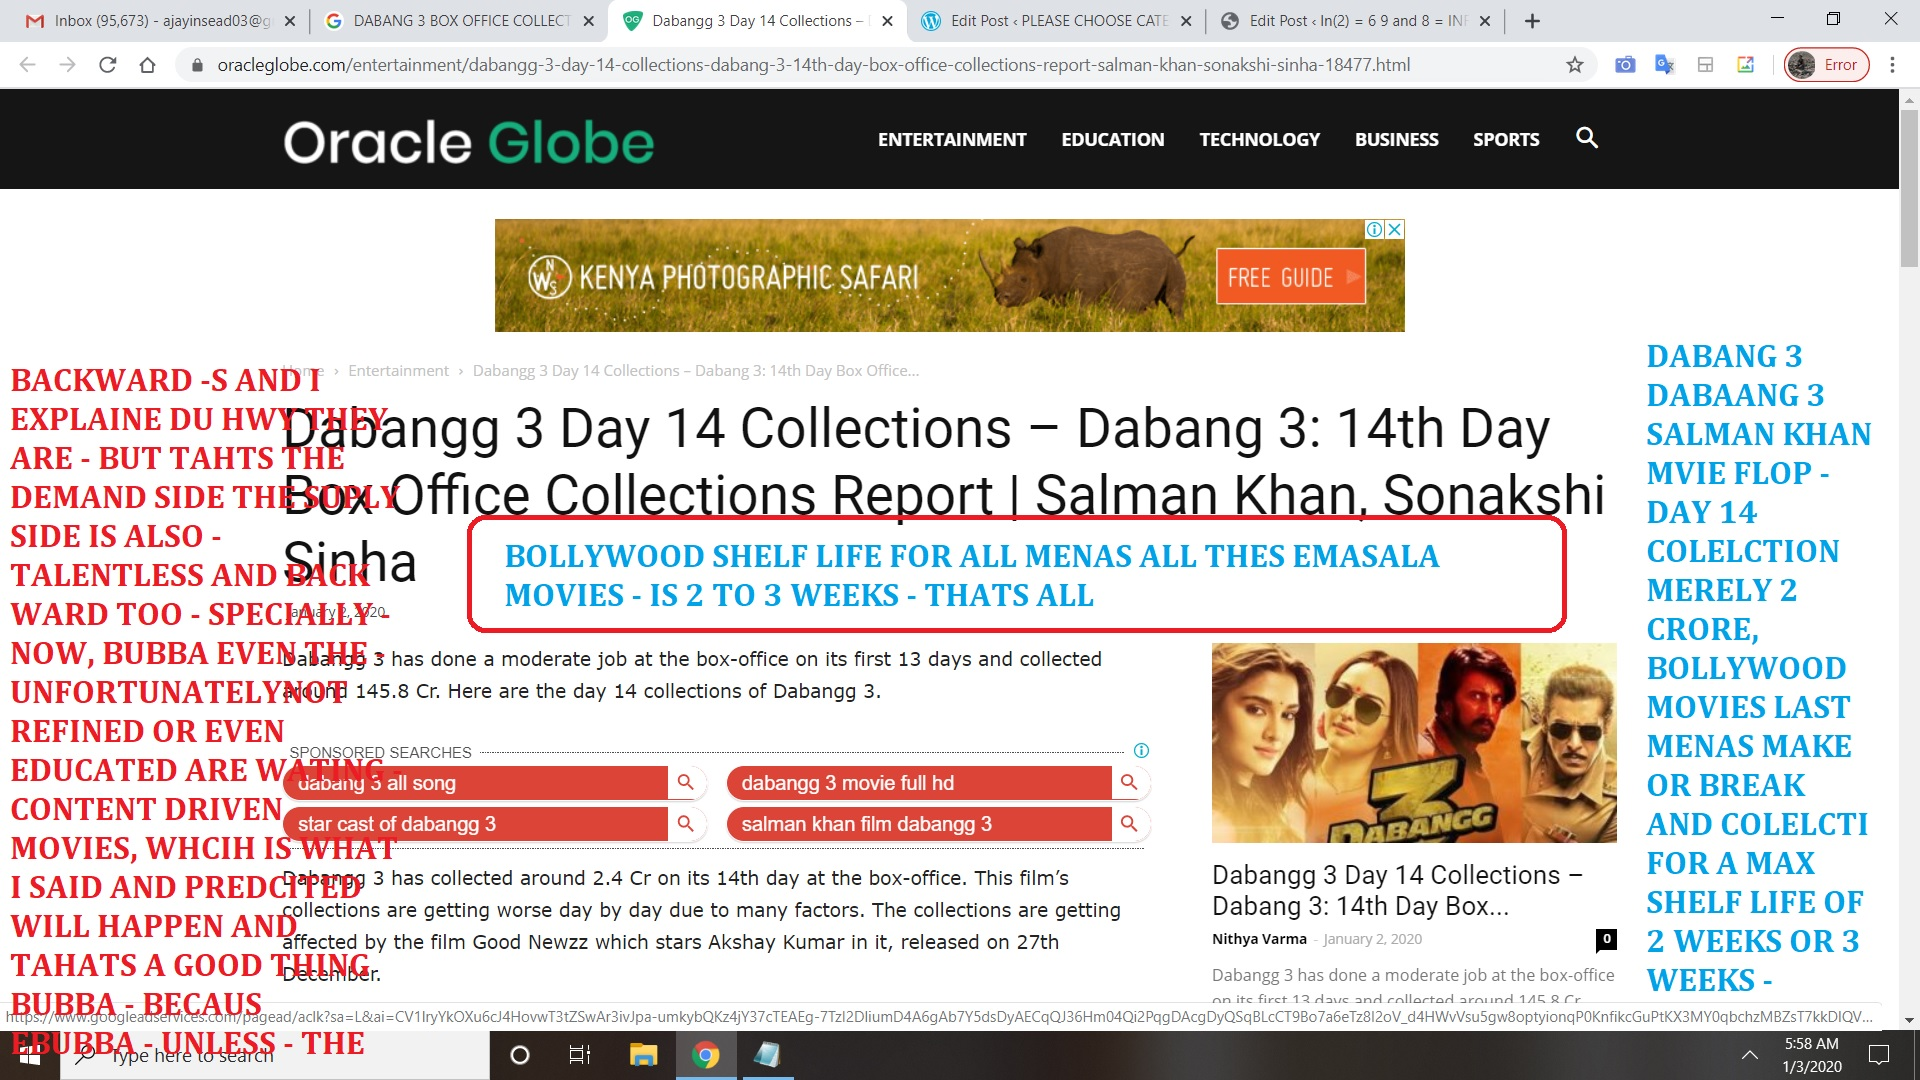 DABANG 3 DABAANG 3 SALMAN KHAN MVIE FLOP - DAY 14 COLELCTION MERELY 2,4 CRORE, BOLLYWOOD MOVIES LAST MENAS MAKE OR BREAK AND COLELCTI FOR A MAX SHELF LIFE OF 2 WEEKS OR 3 WEEKS -